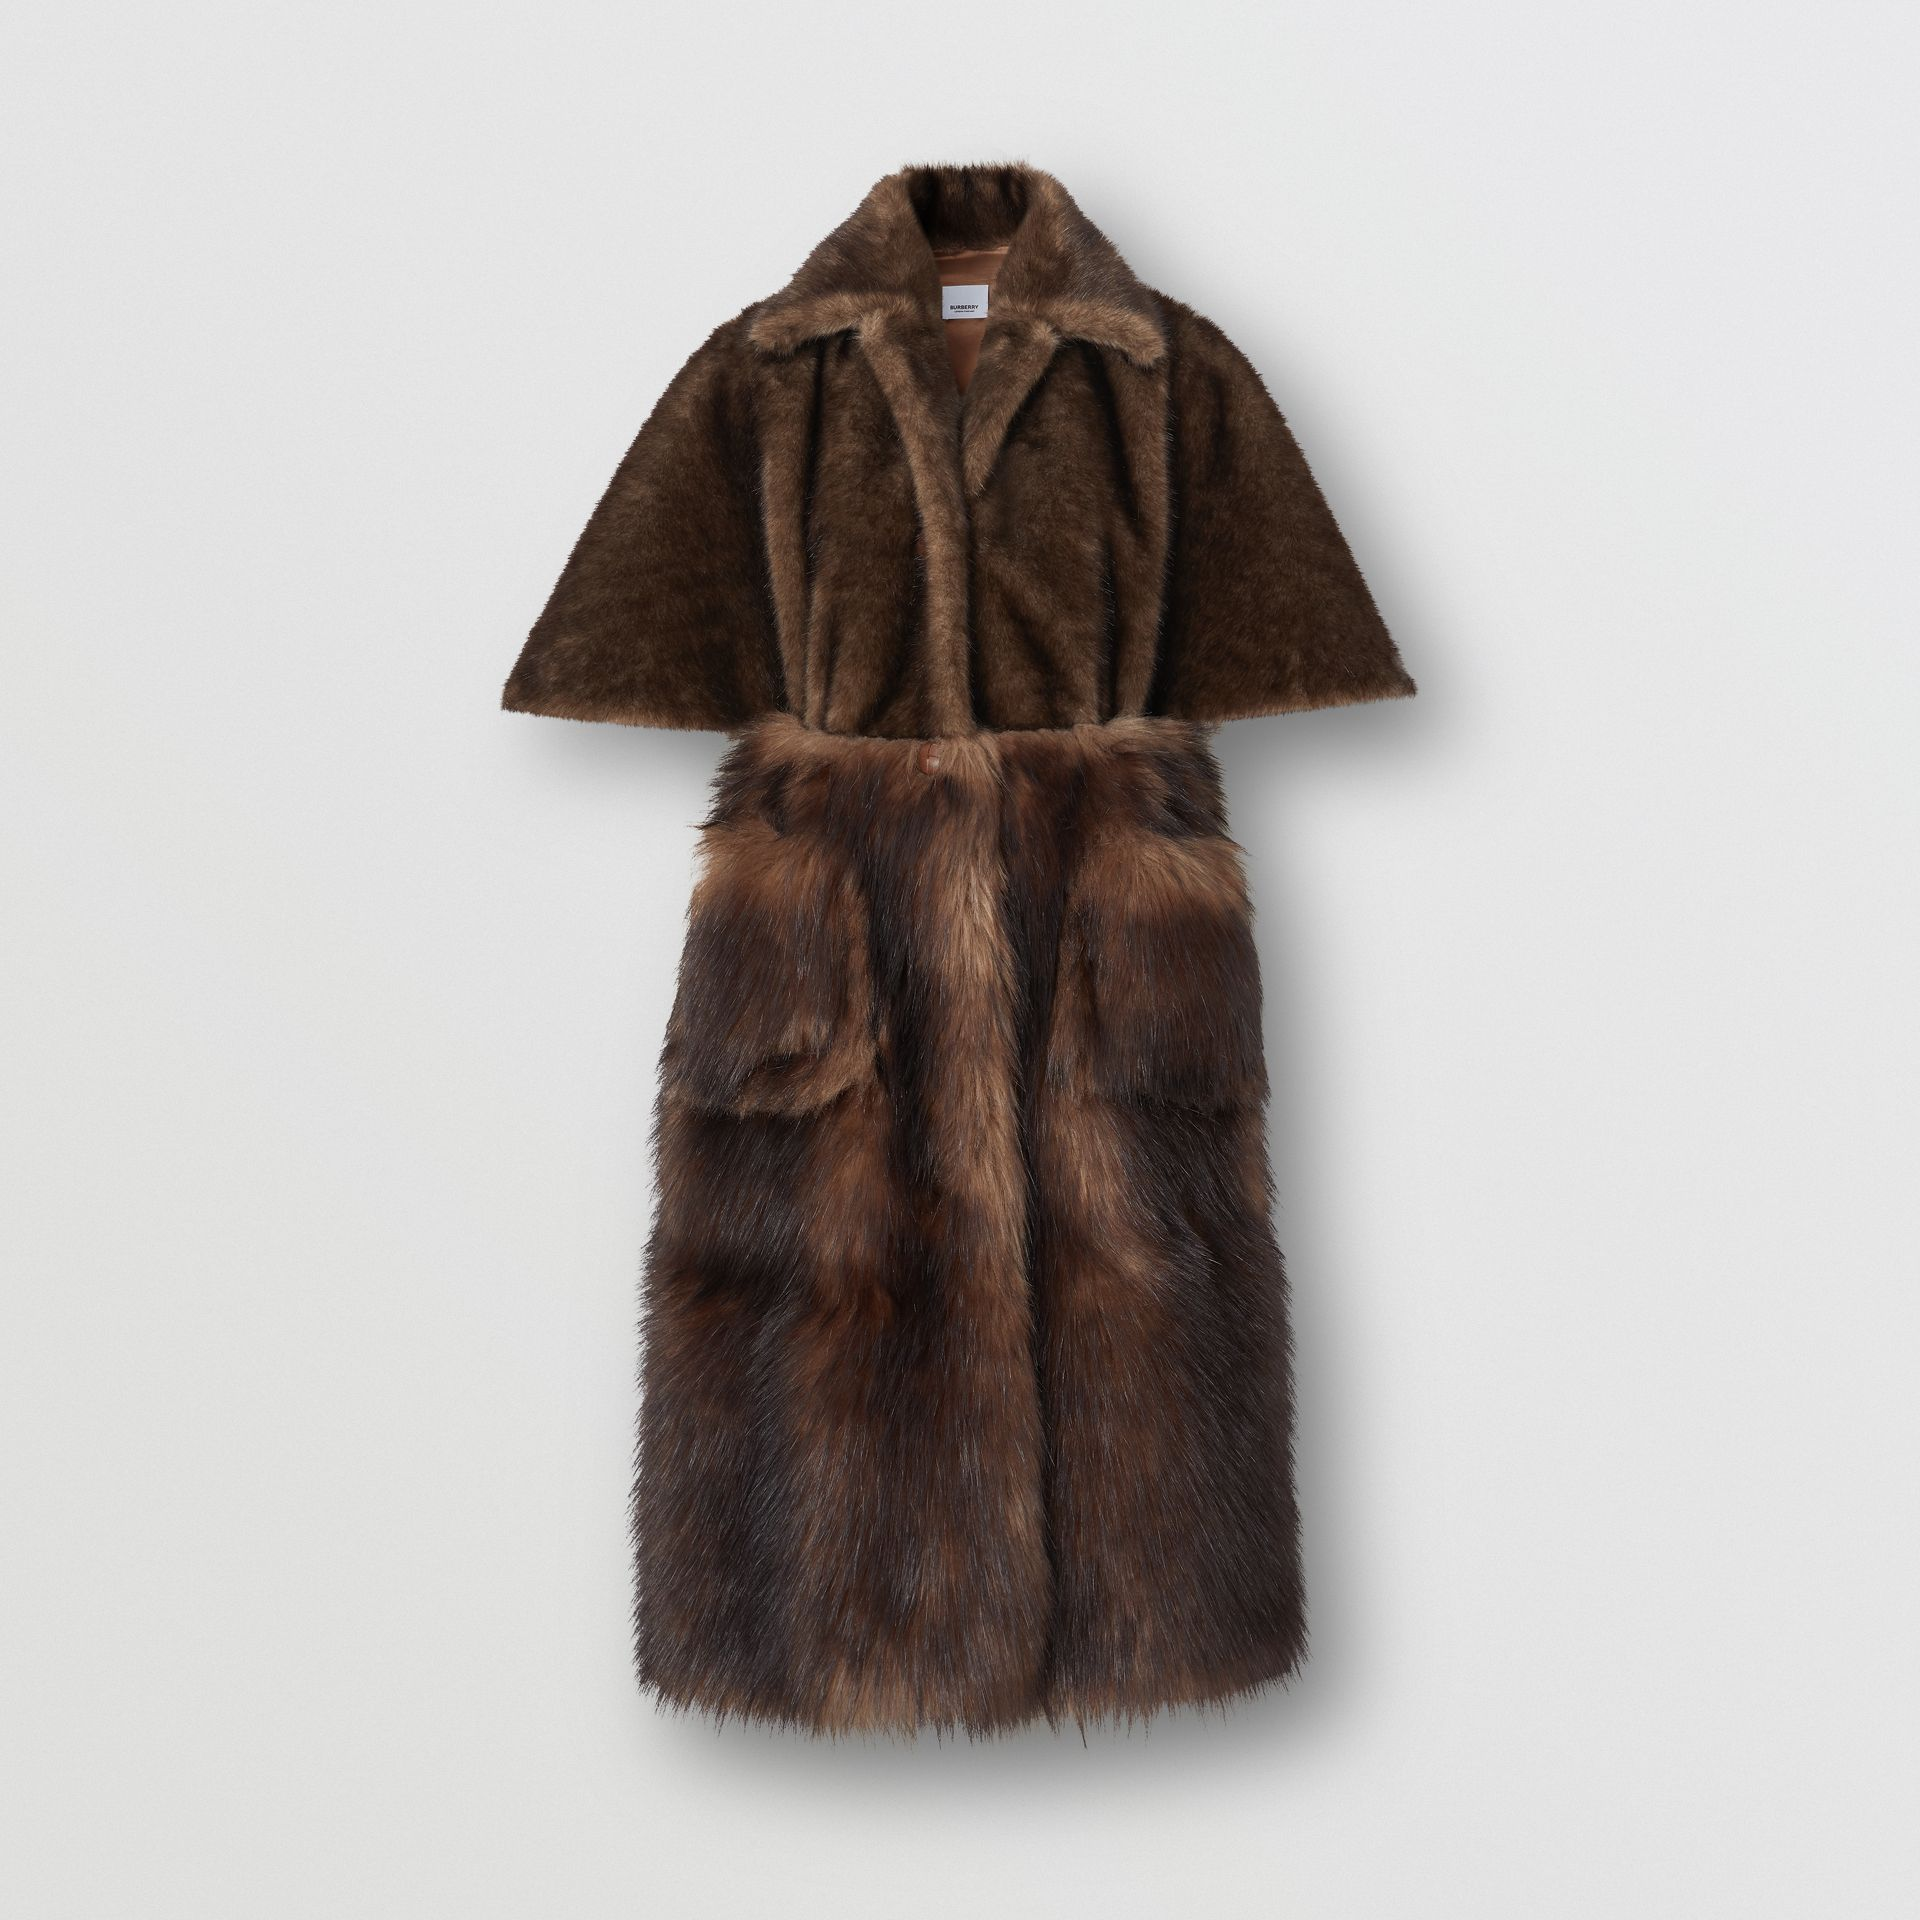 Faux Fur Cape Coat in Brown - Women | Burberry - gallery image 3